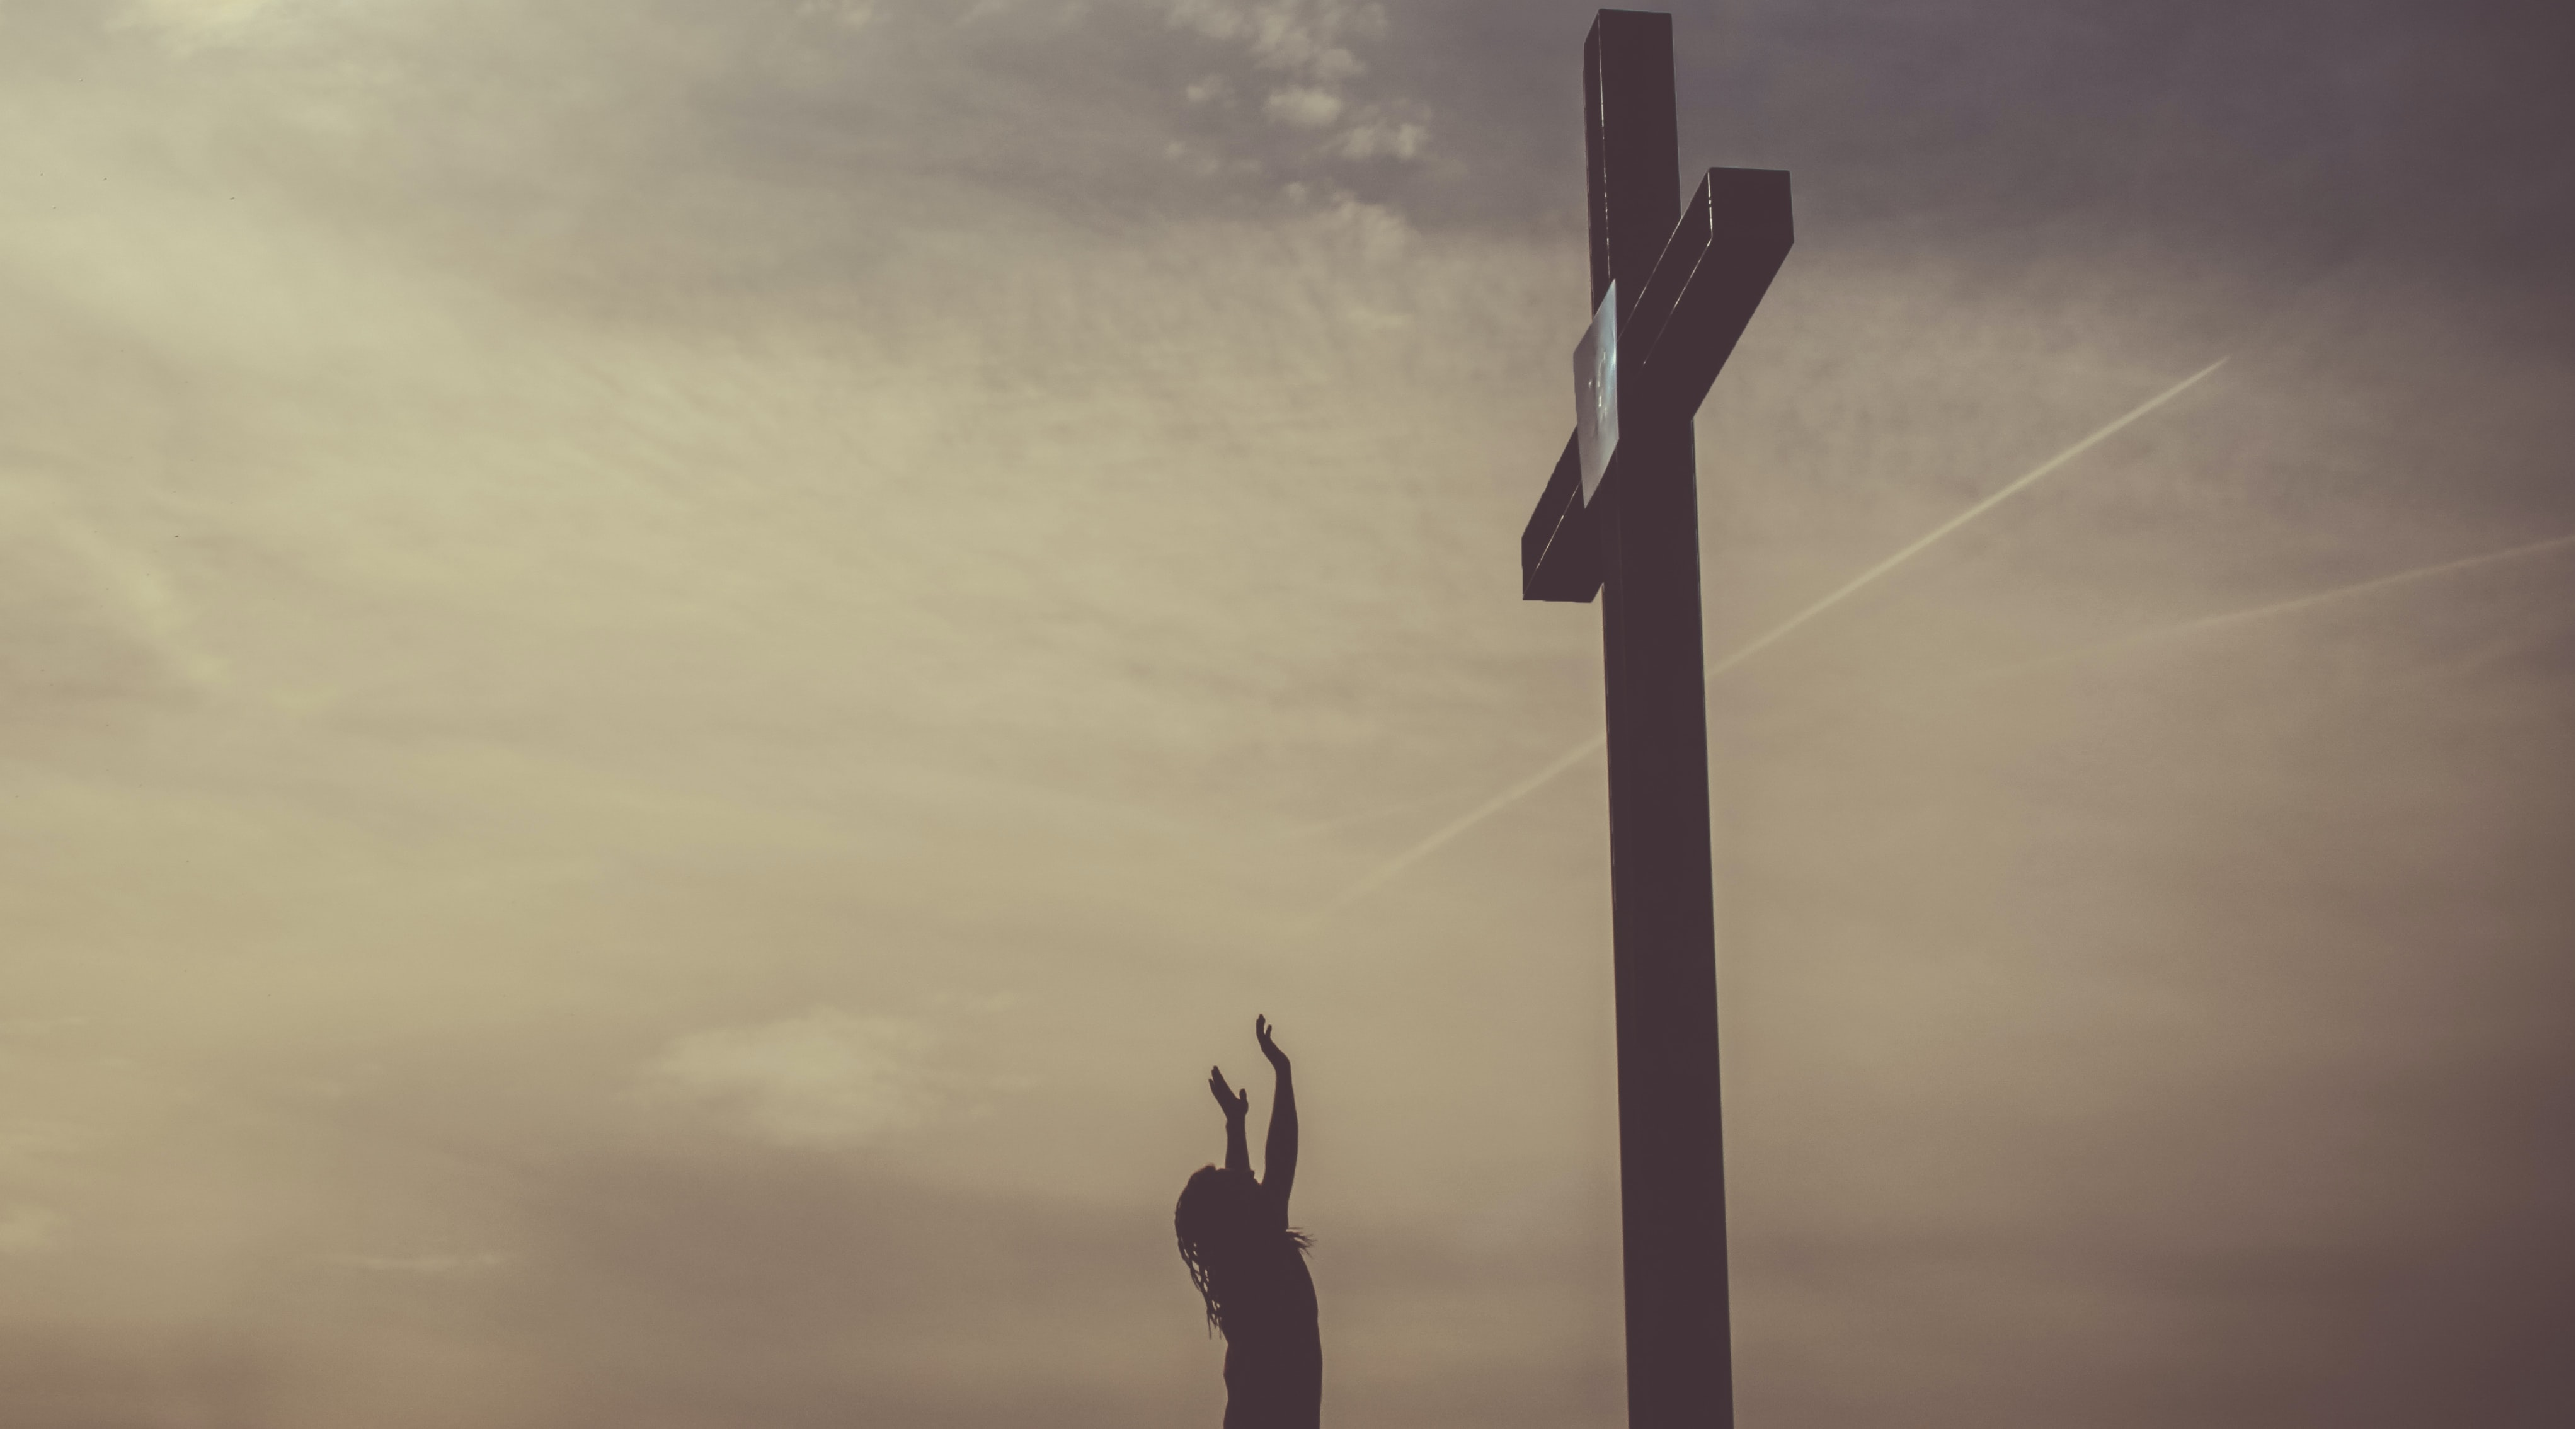 A cross with a cloudy sky background.